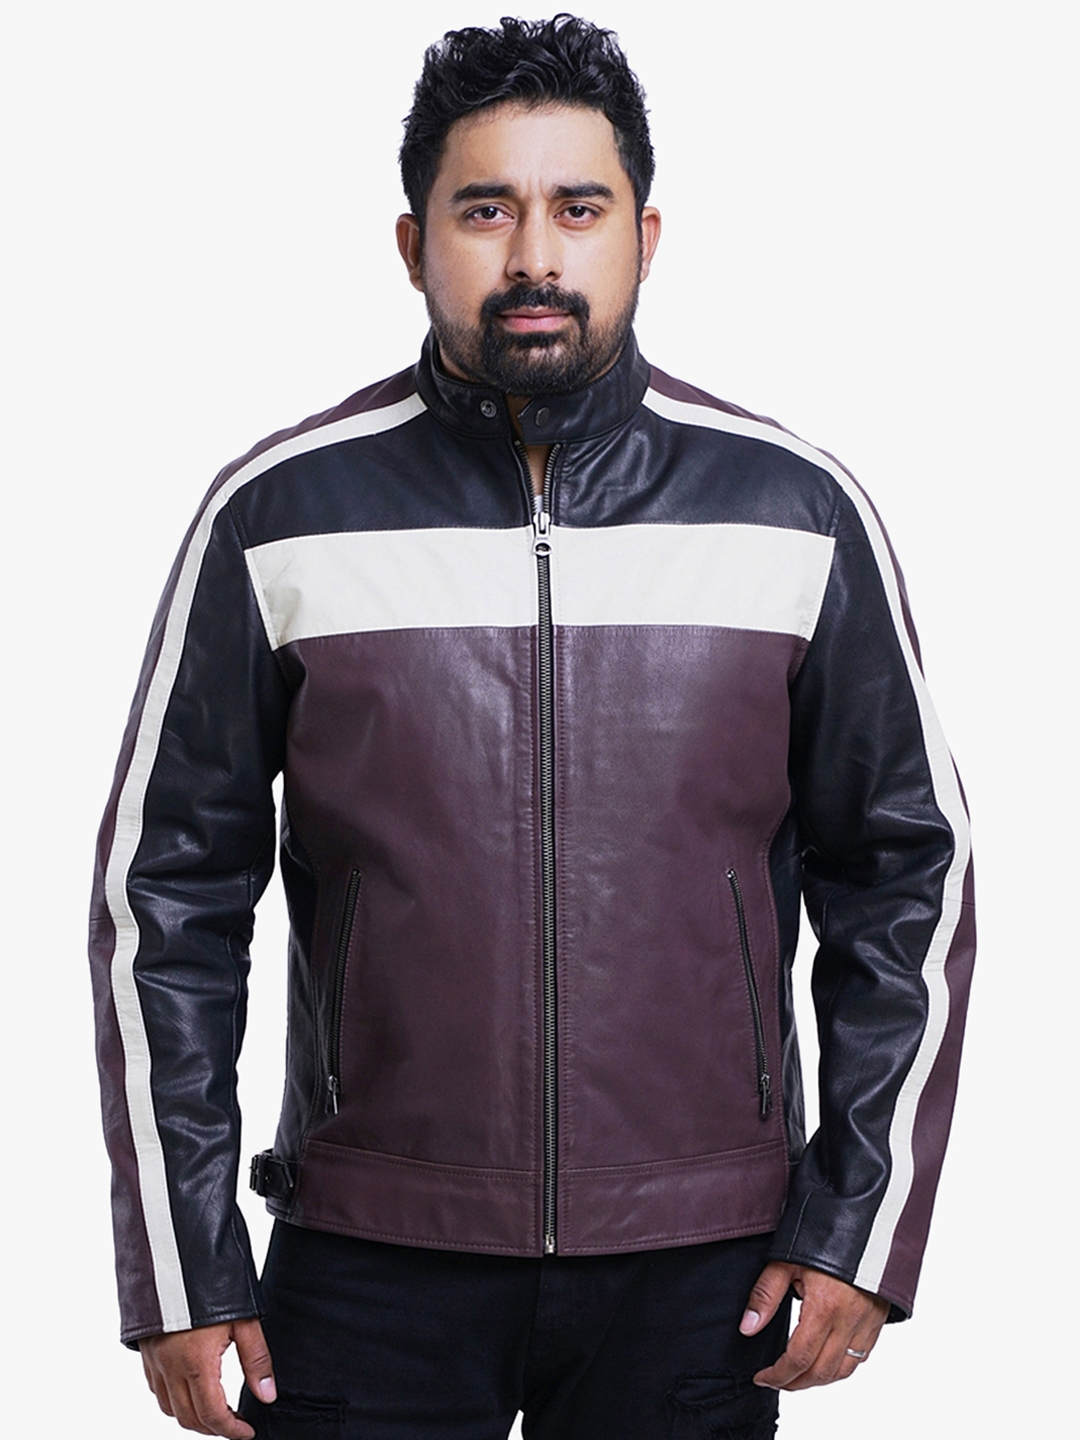 df4d5d7b7 Roadies by Justanned Men Brown Colourblocked Leather Jacket